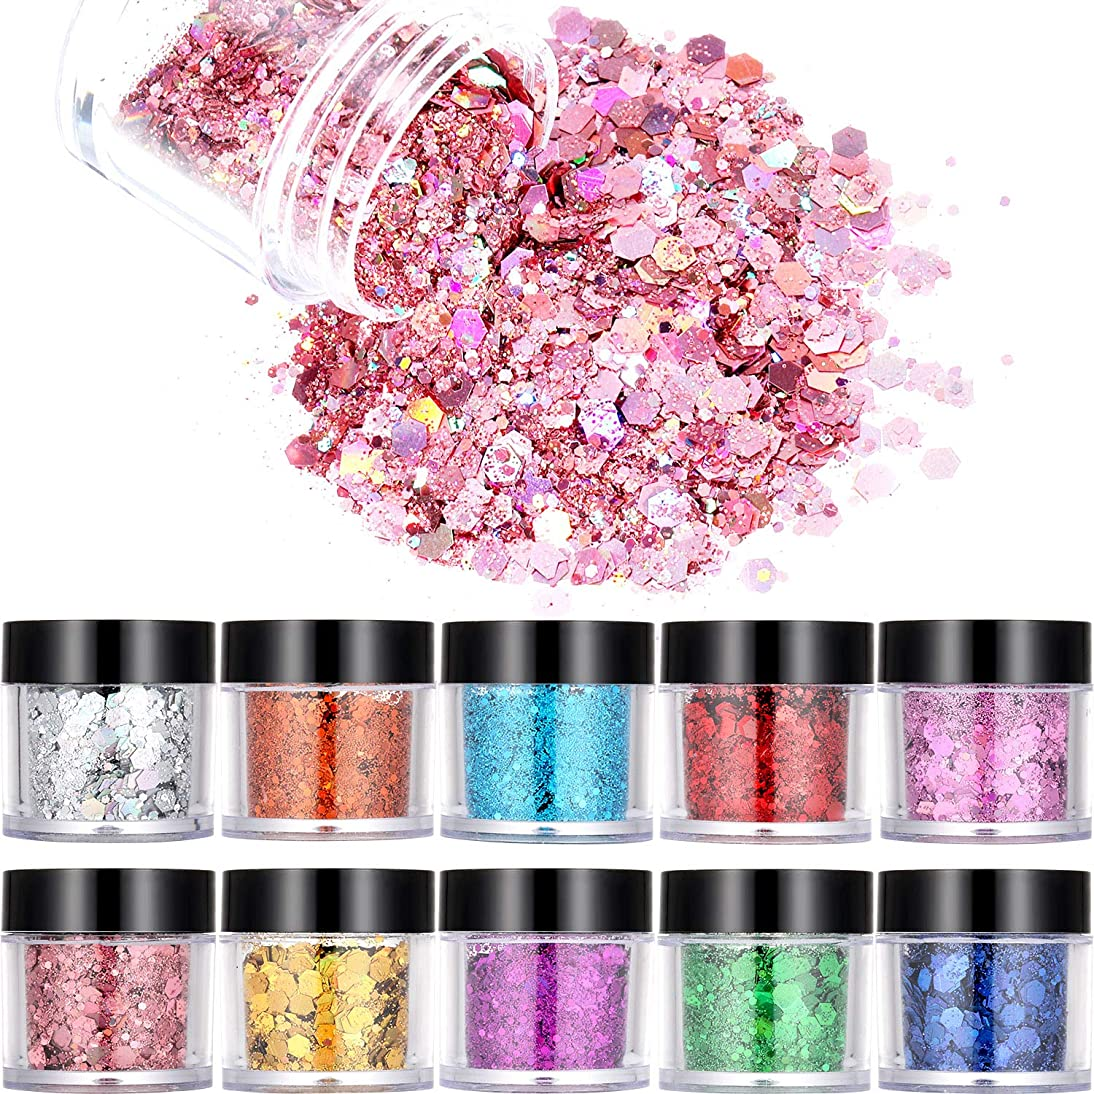 10 Boxes Nail Chunky Glitter Sequins Iridescent Flakes Cosmetic Sequins Shining Ultra-thin Tips for Face Body Hair Nails Art